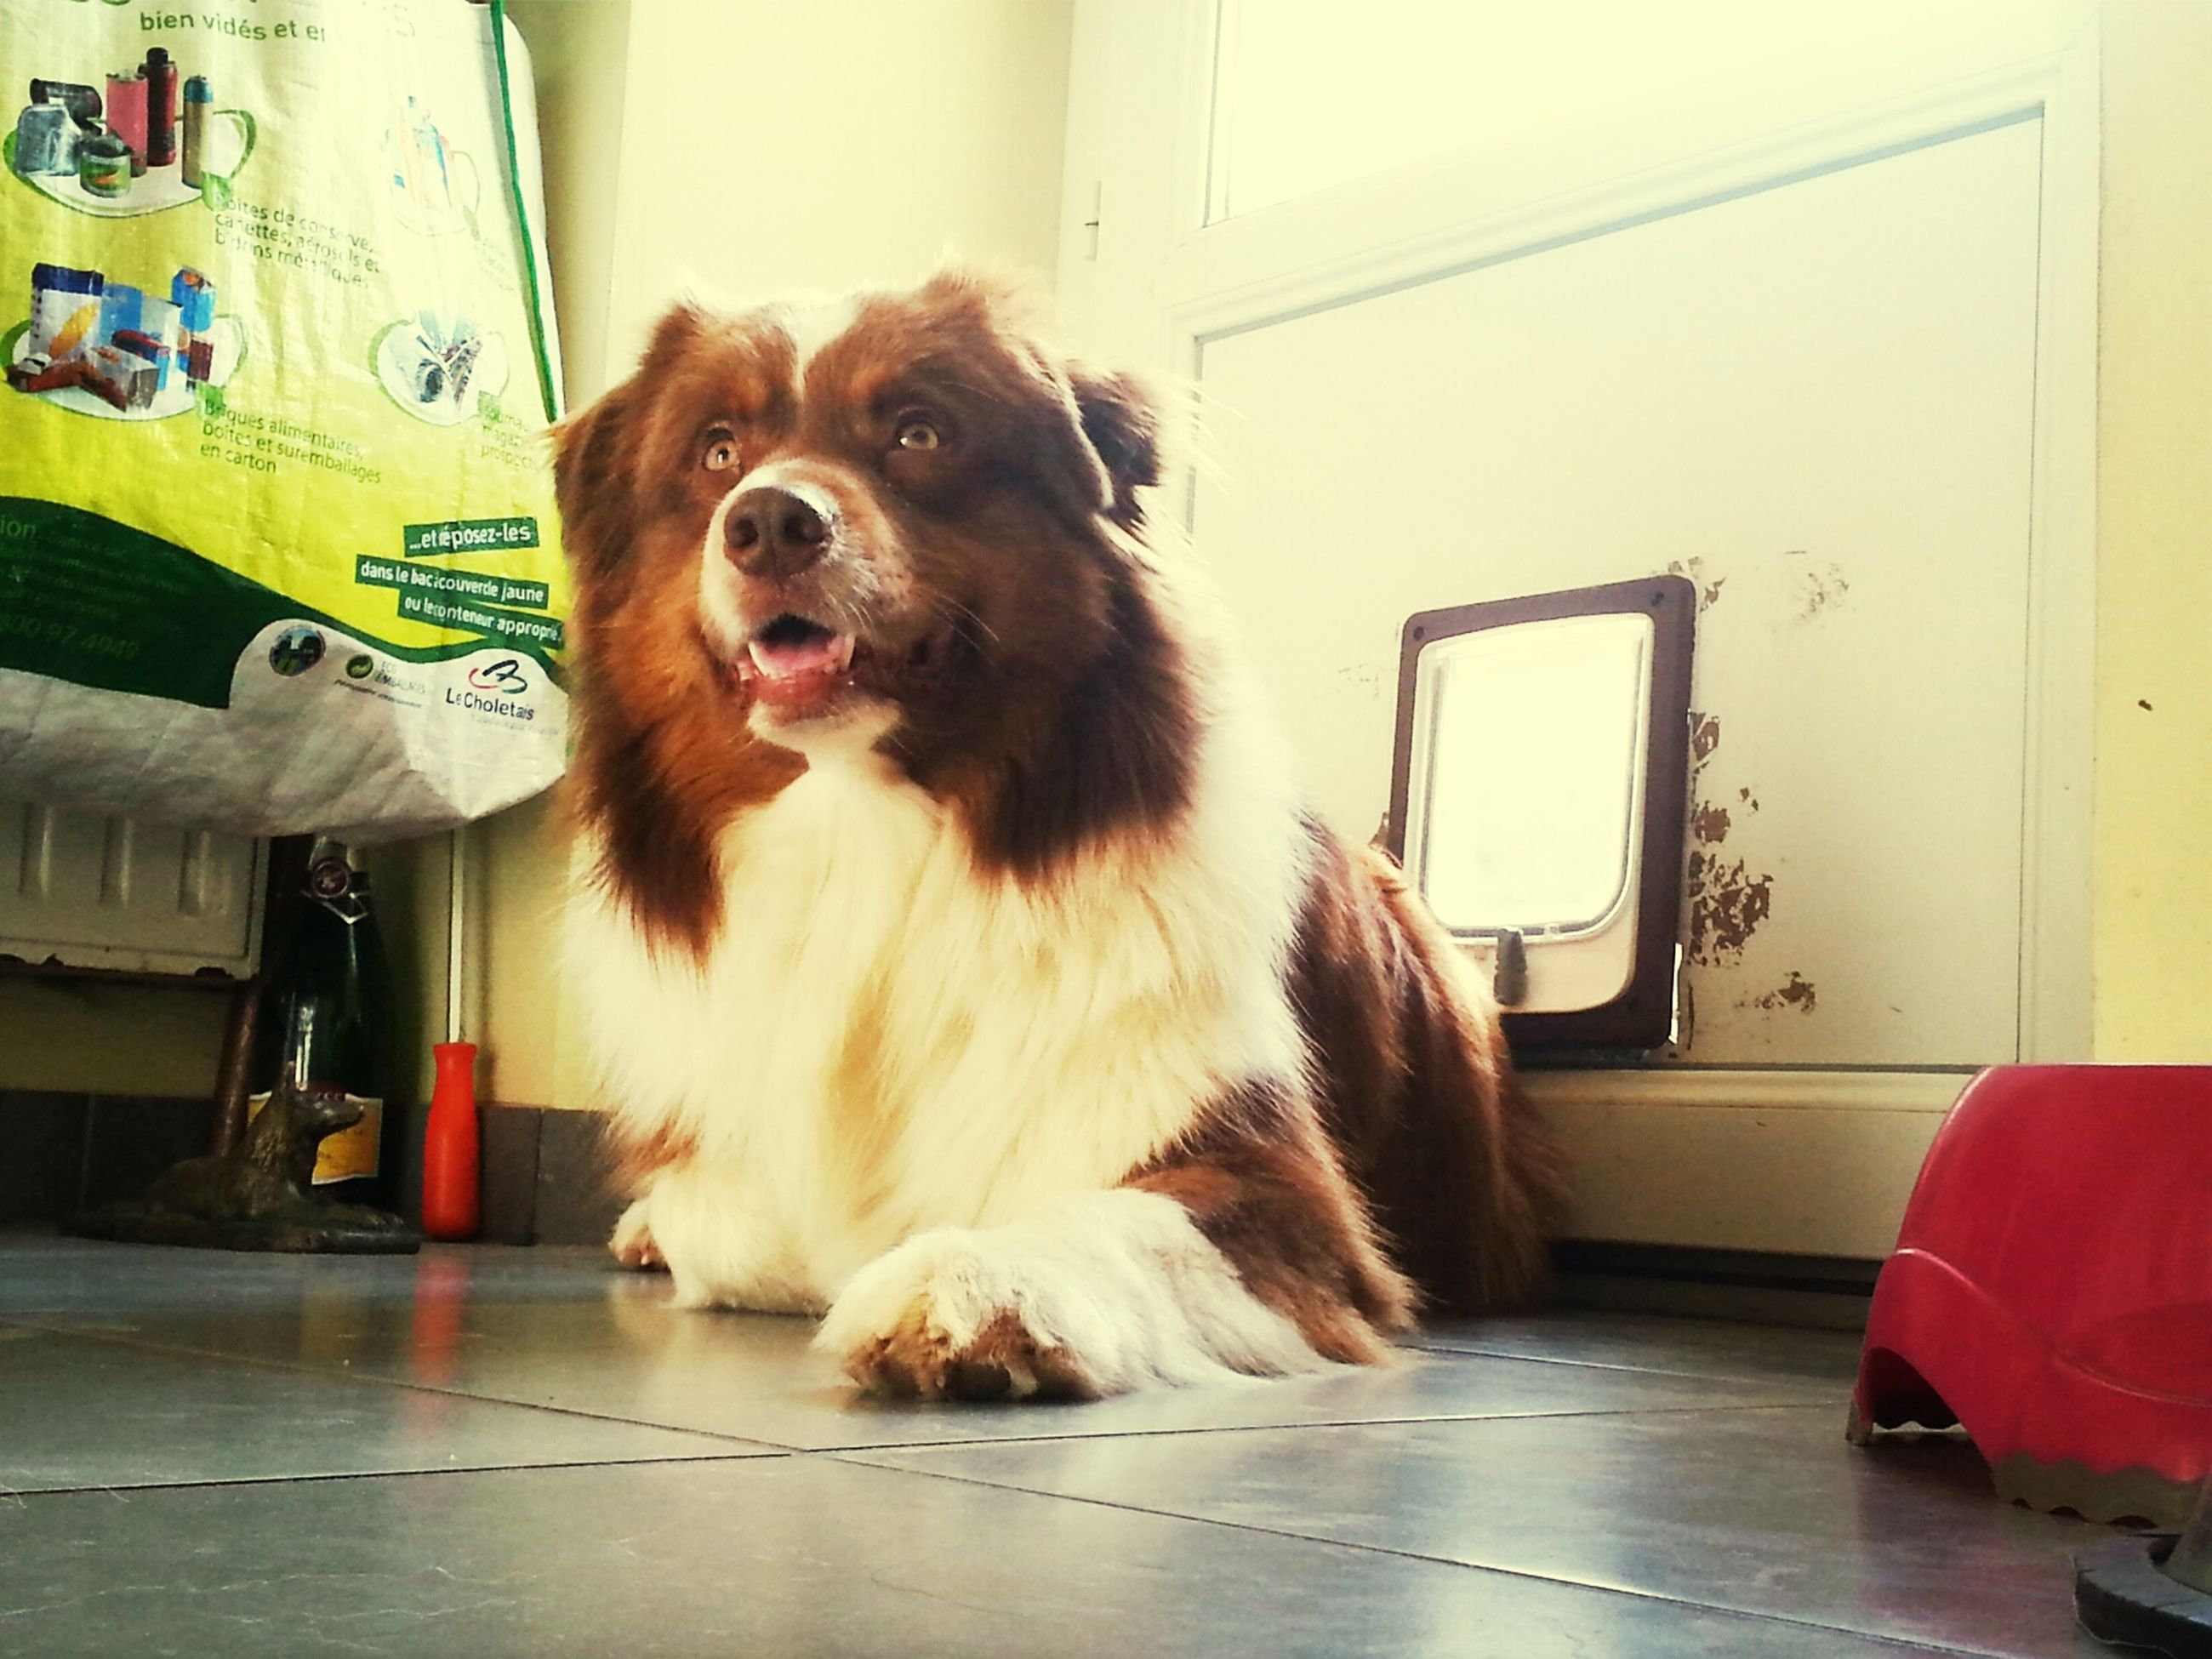 domestic animals, pets, animal themes, one animal, mammal, dog, indoors, sitting, portrait, animal hair, full length, relaxation, home interior, looking at camera, home, zoology, front view, no people, door